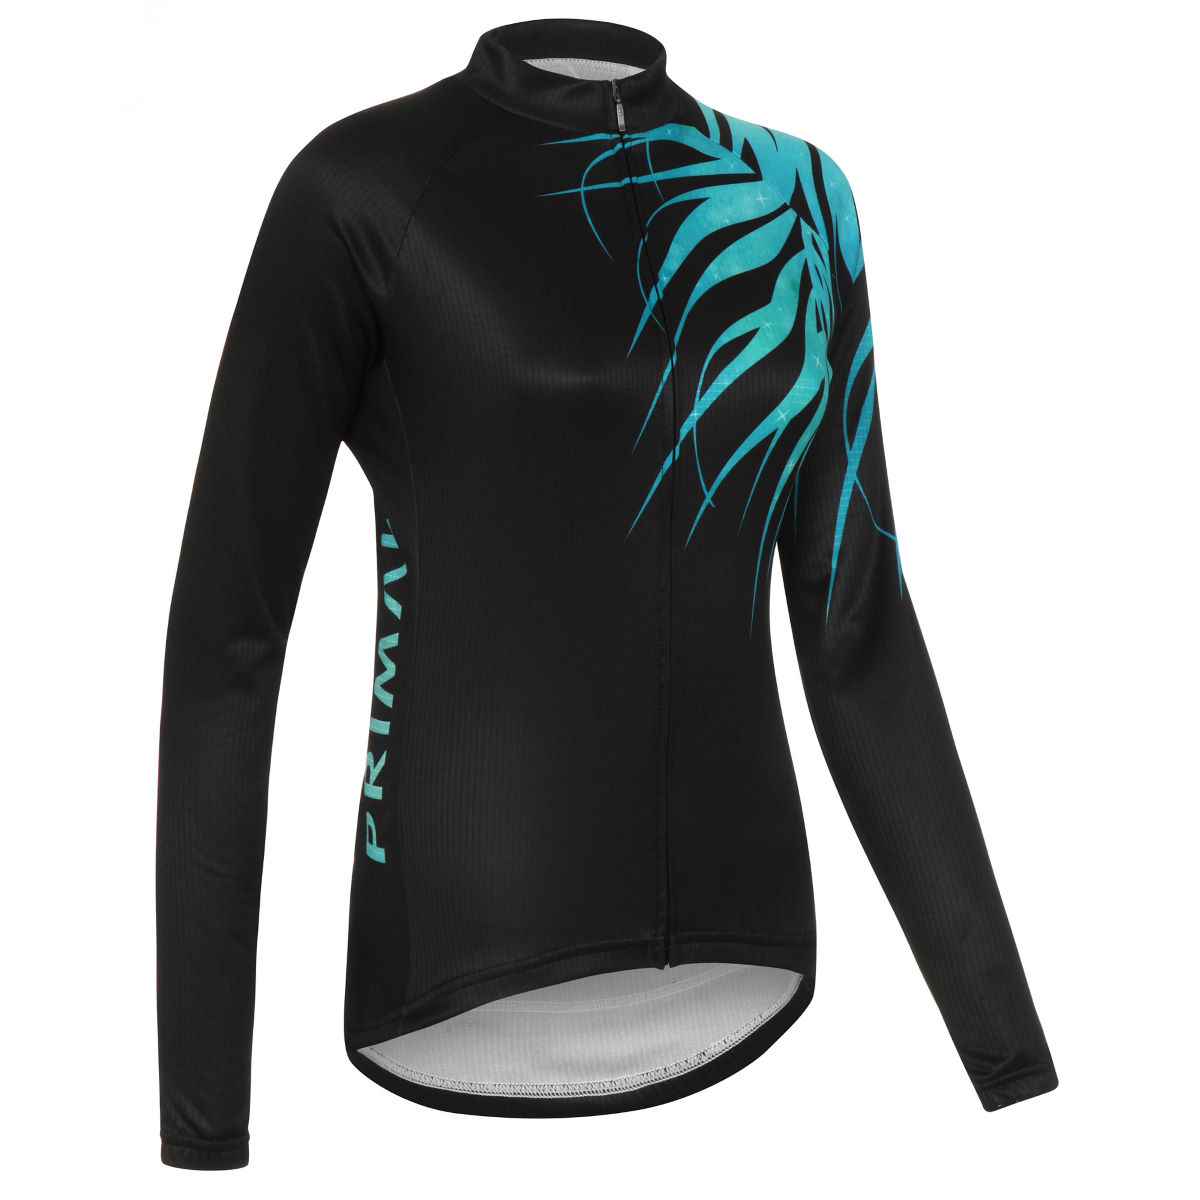 Maillot Femme Primal Flynn Heavyweight (manches longues) - S